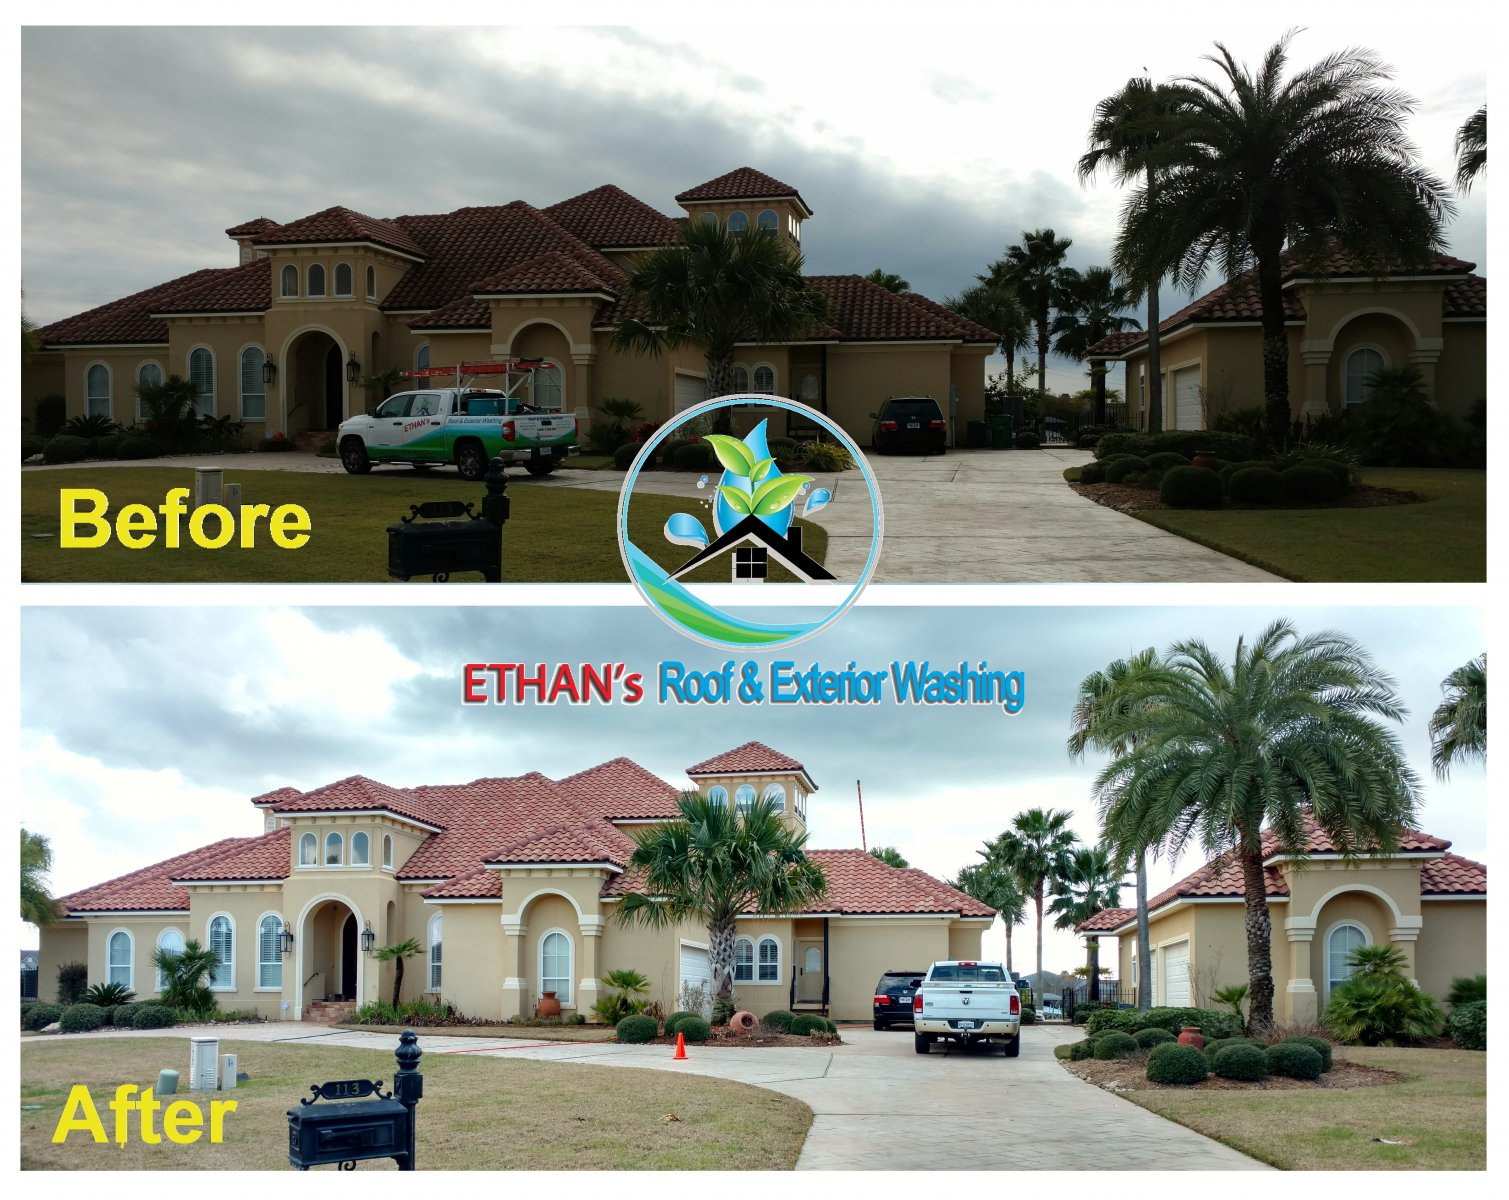 ... Roof And Exterior Washing Inc. Makes Your Home Look Brand New Again  With A Full Line Of Power Pressure Washing And Soft Non Pressure Washing  Services.